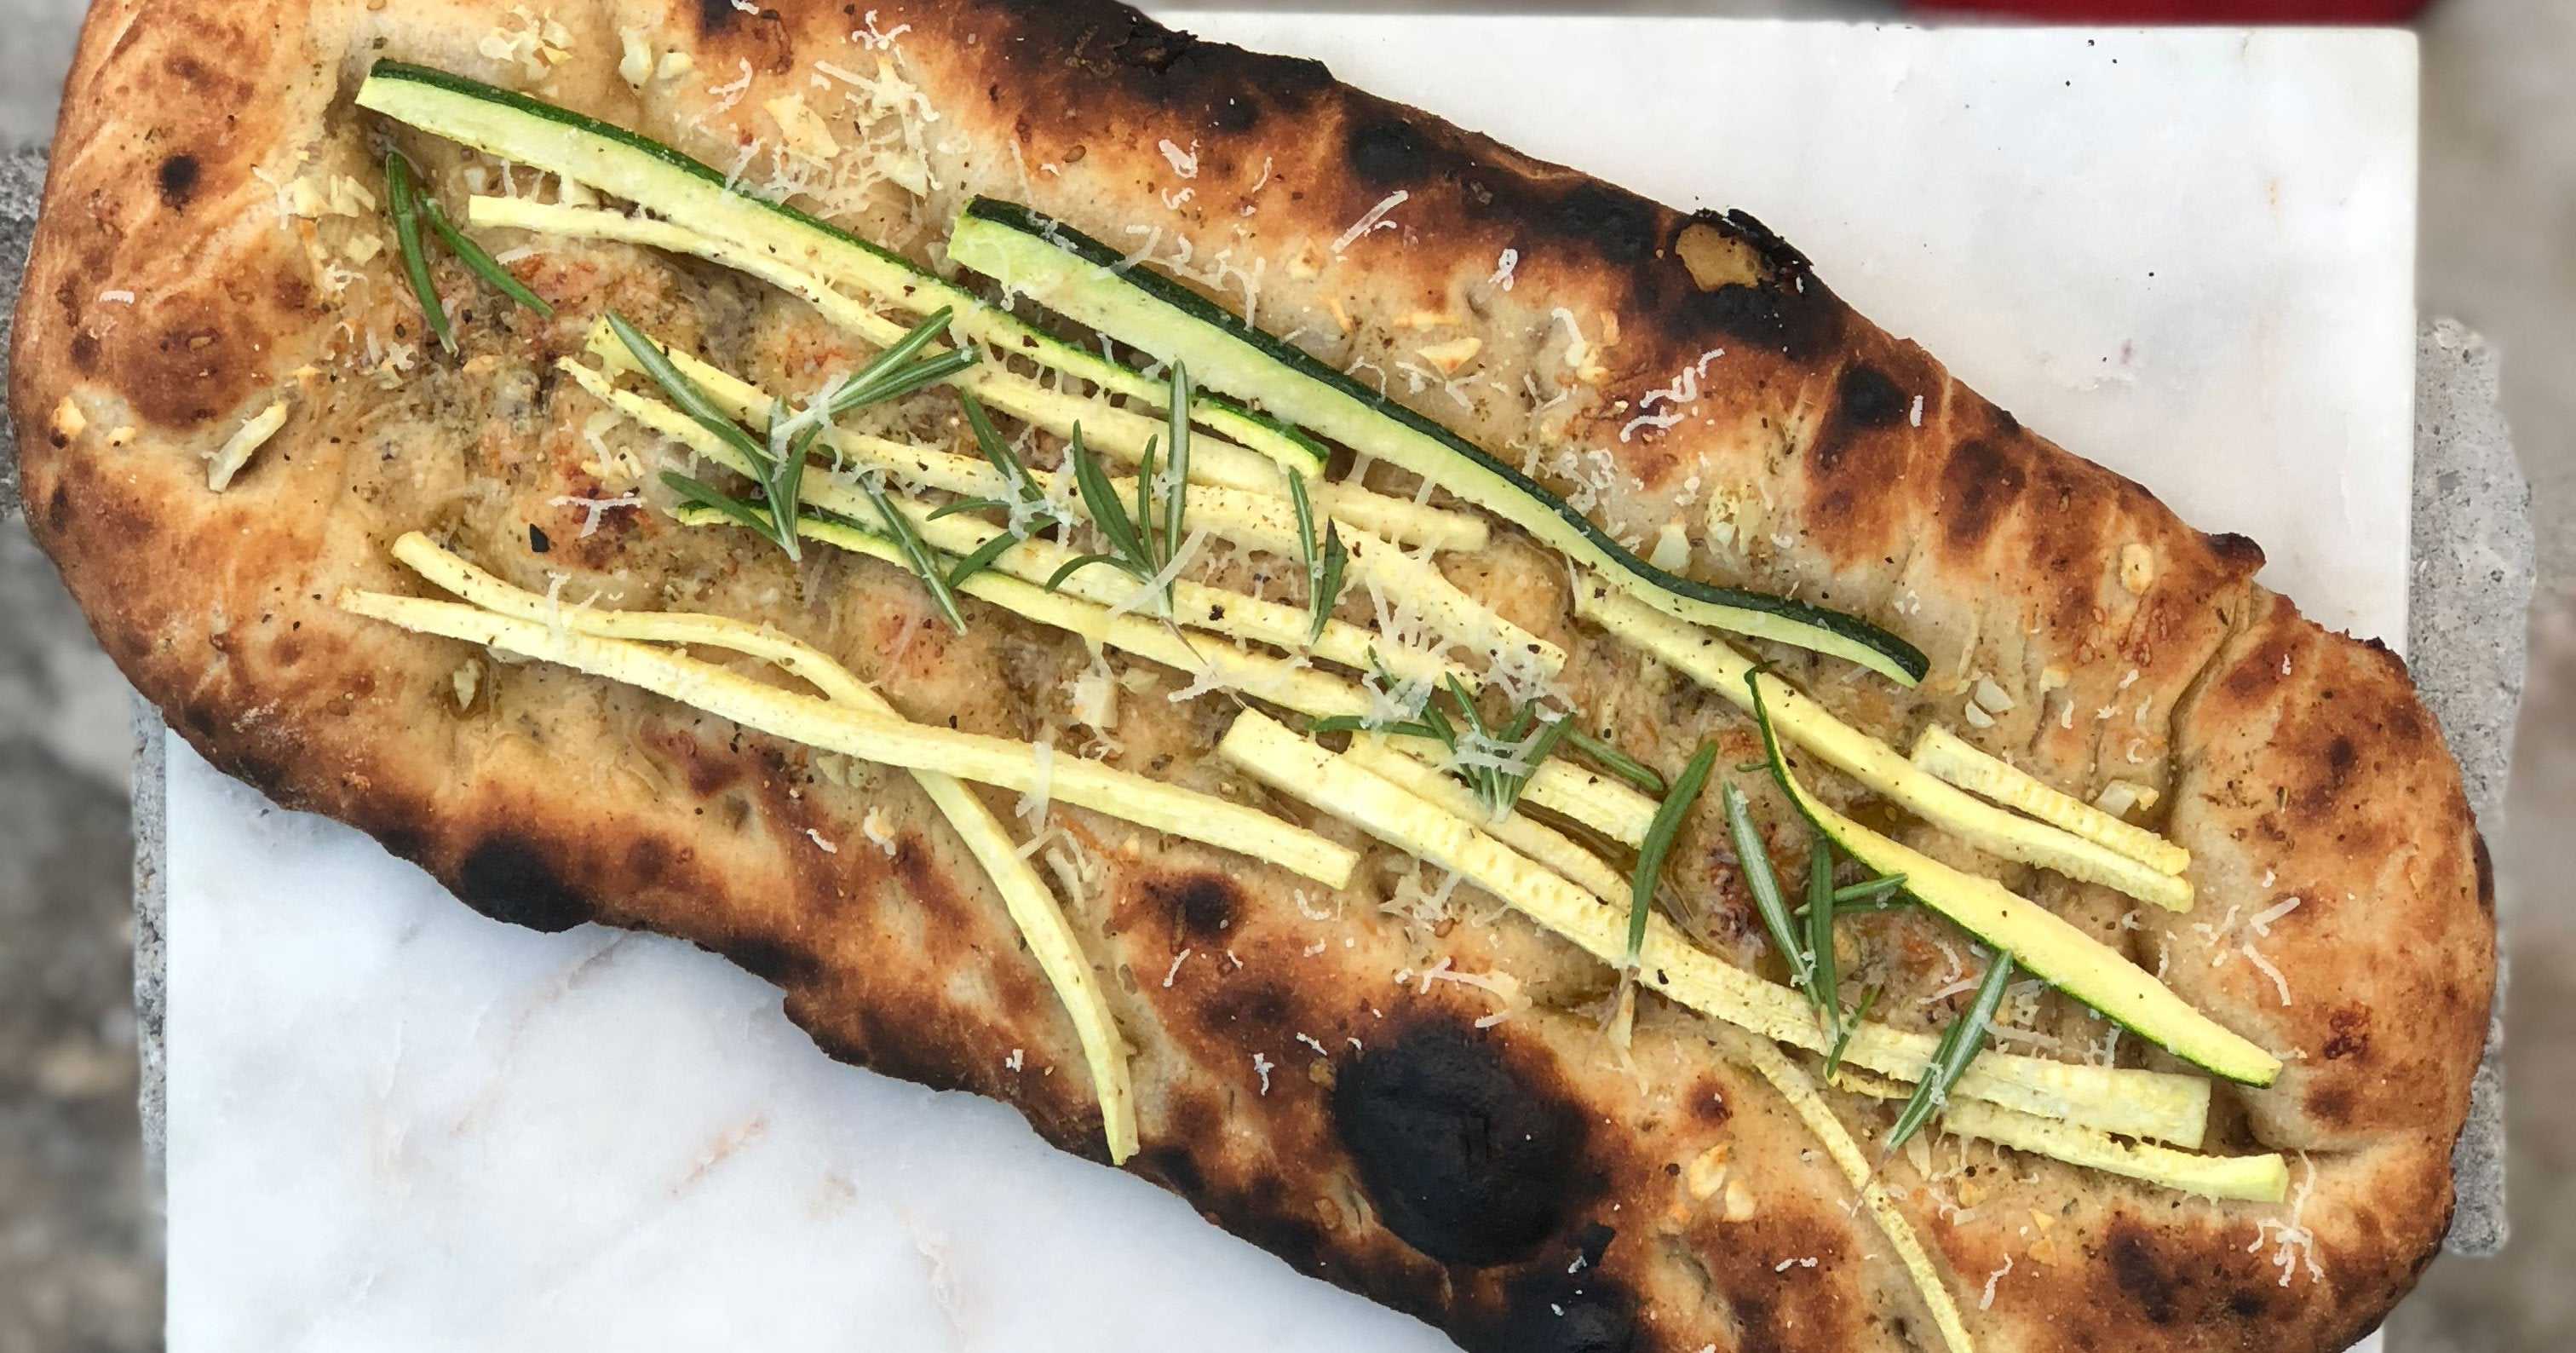 Courgette & Parmesan Focaccia Featured Image